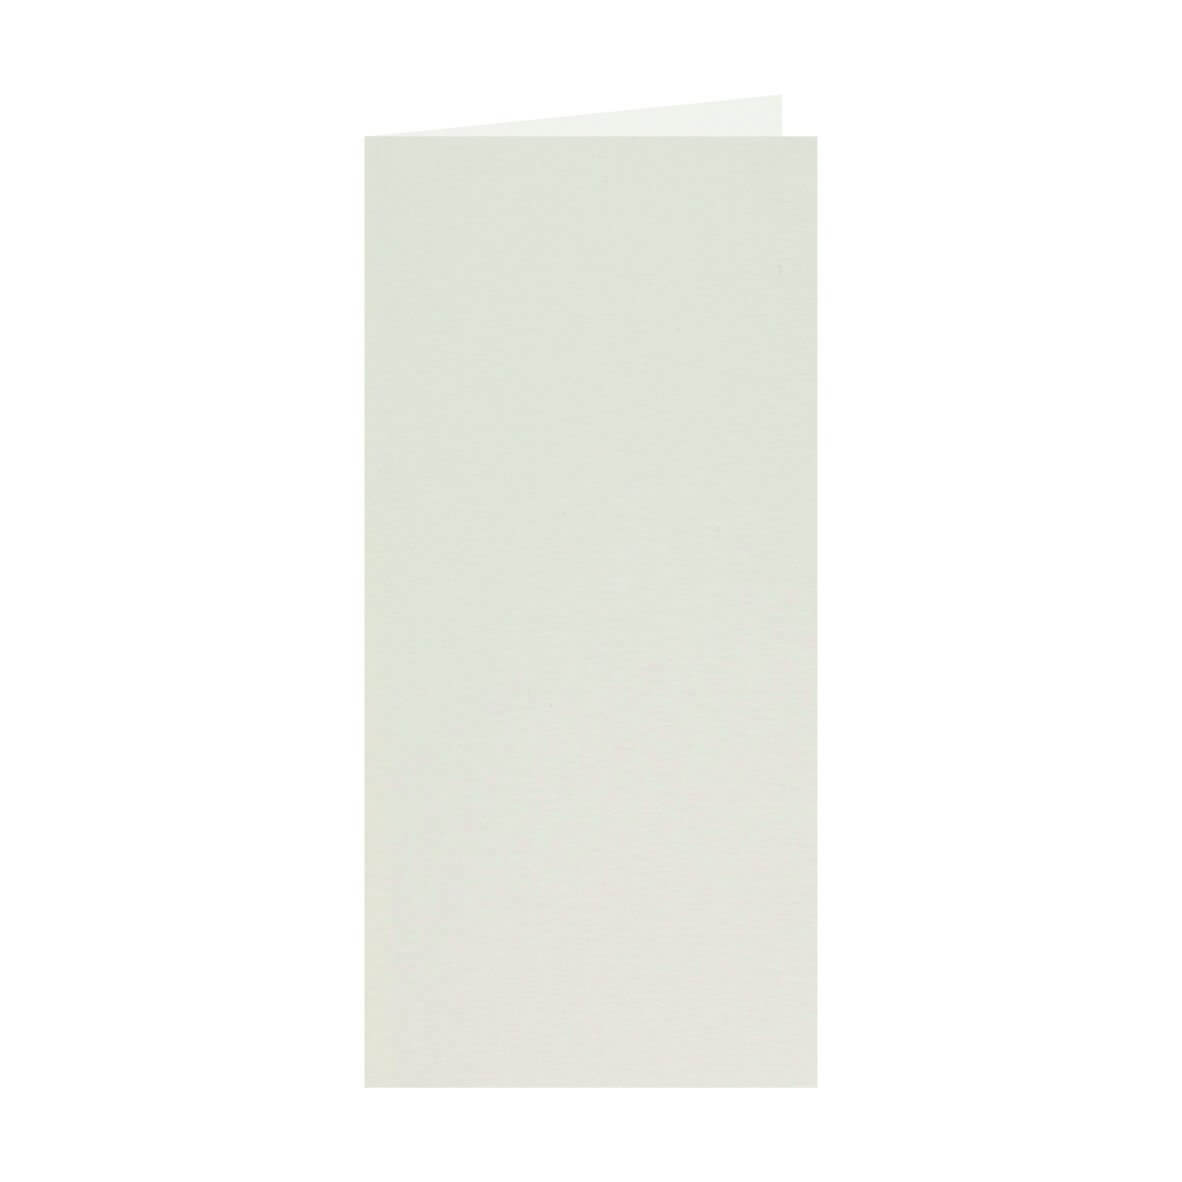 Paperstock Large Tall (DL) Insert - Accent Antique Ivory